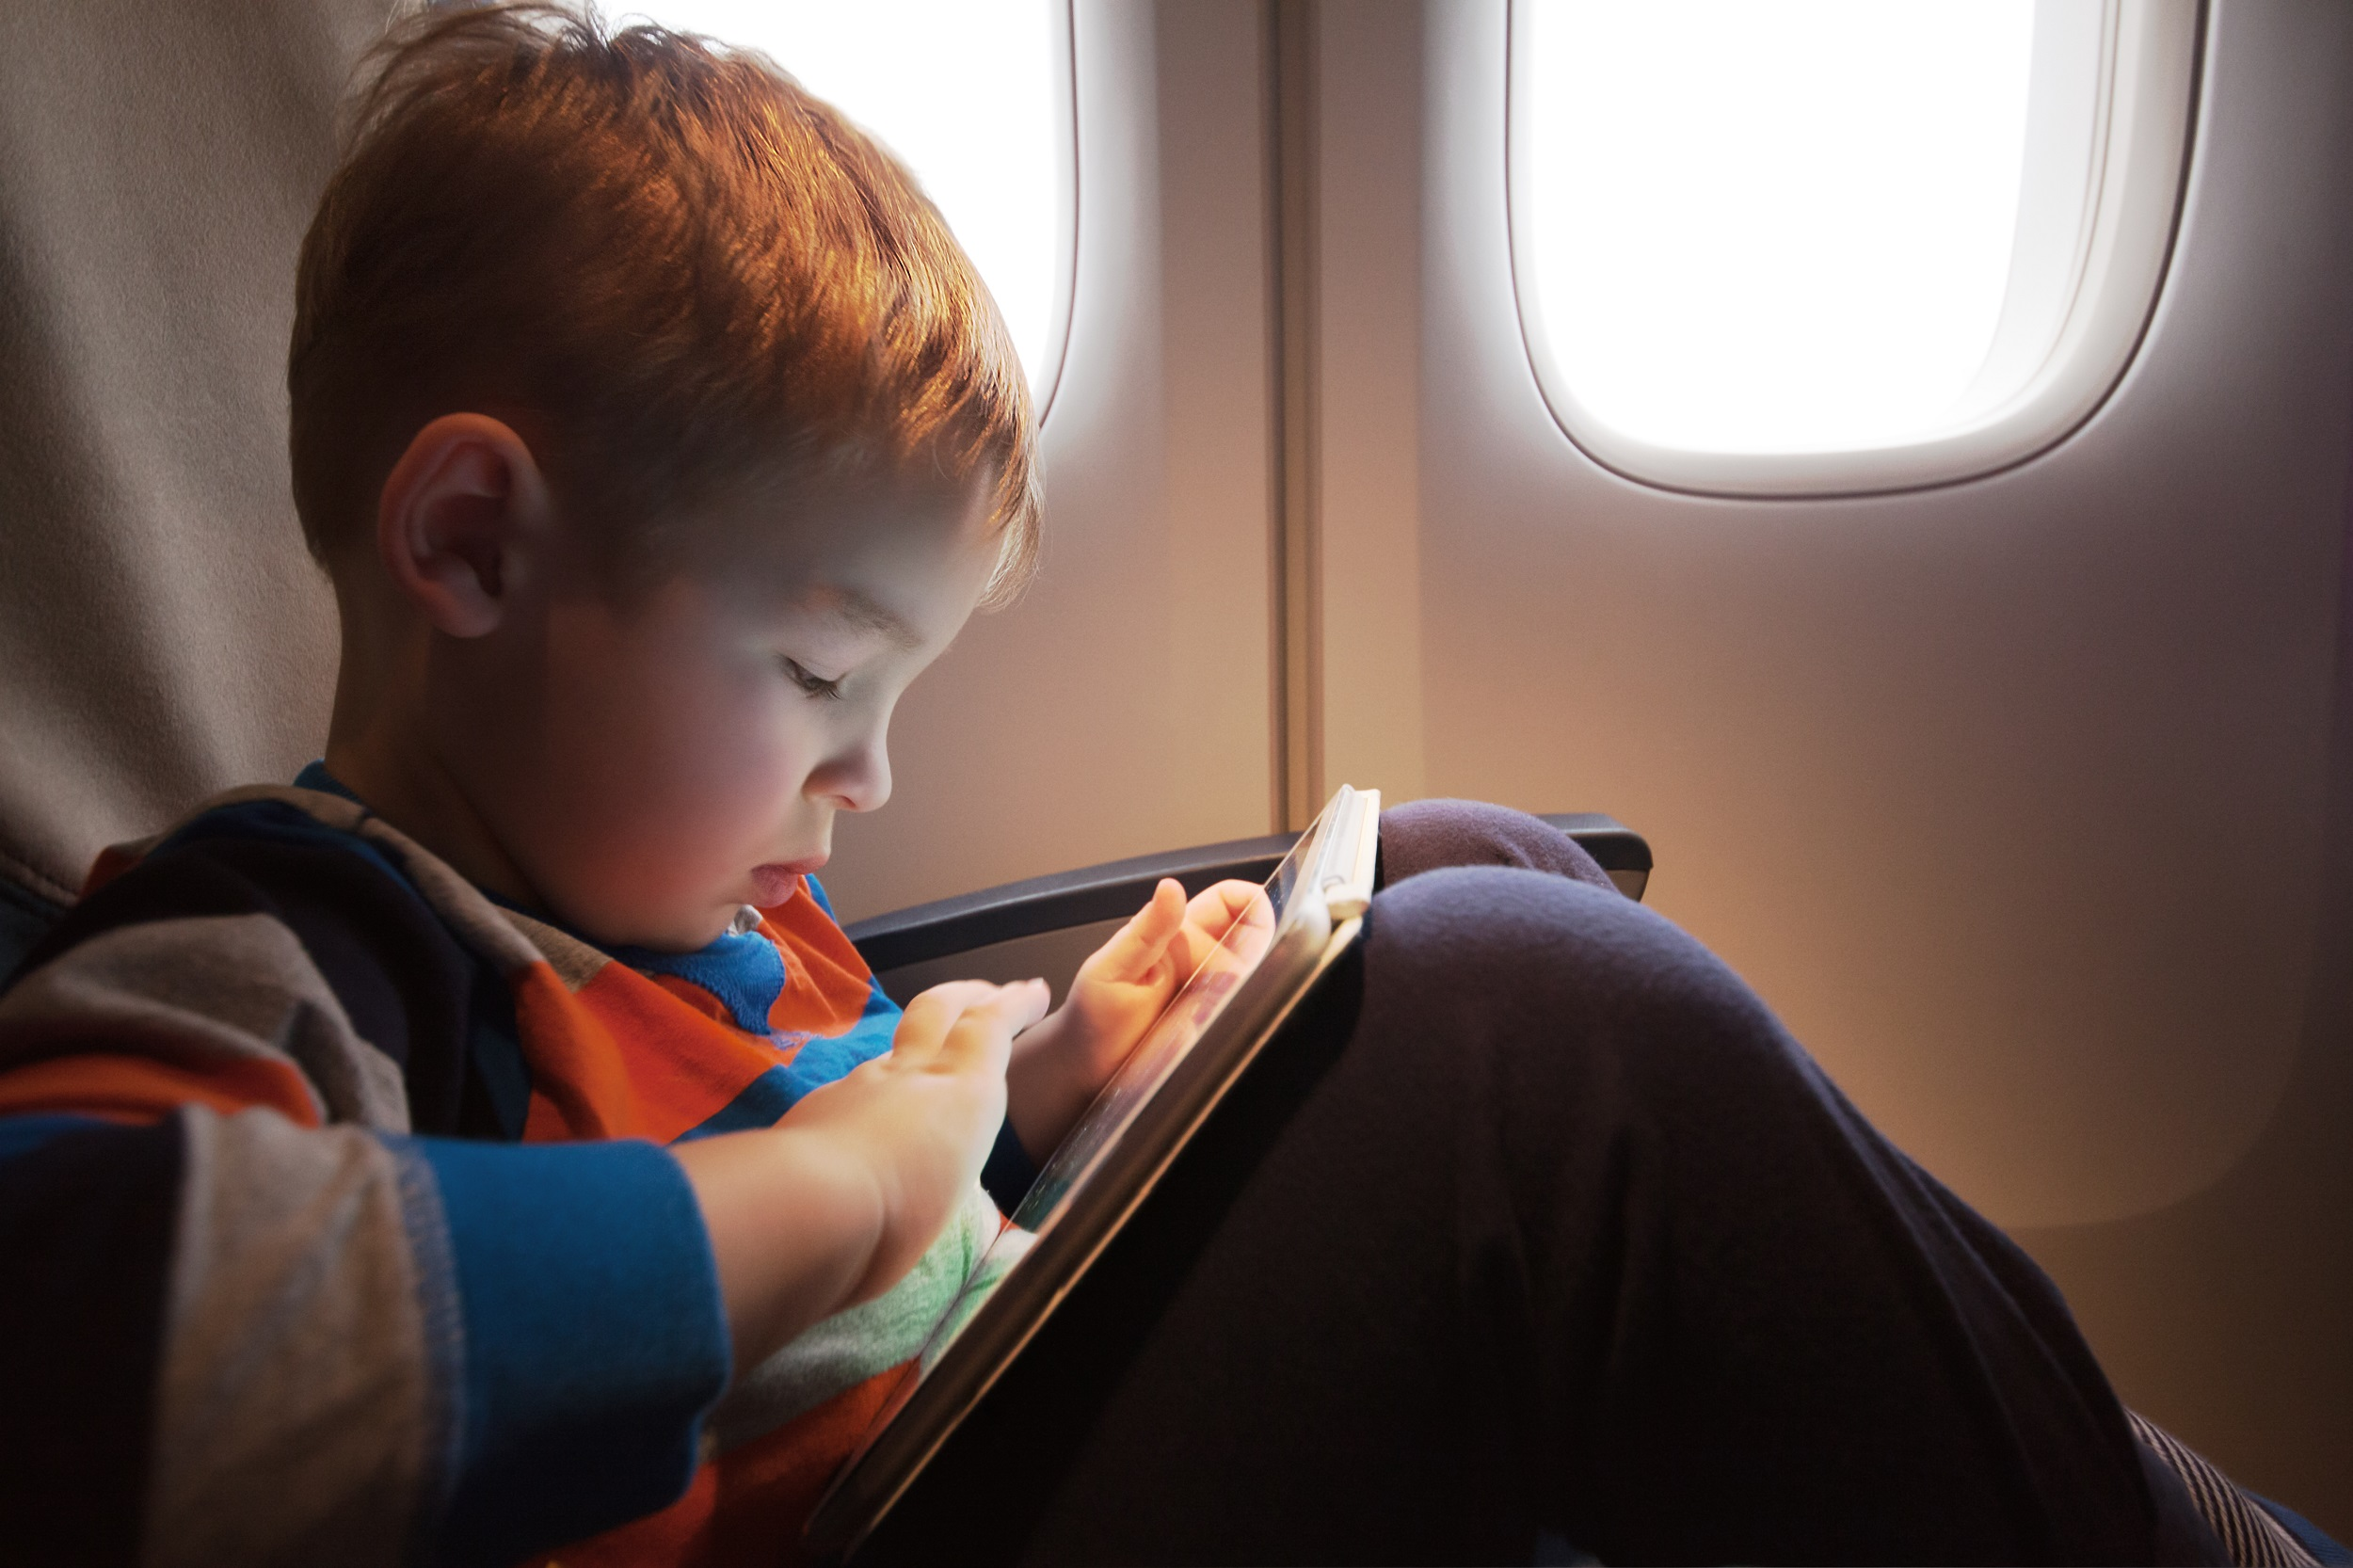 Young Kids on Flights